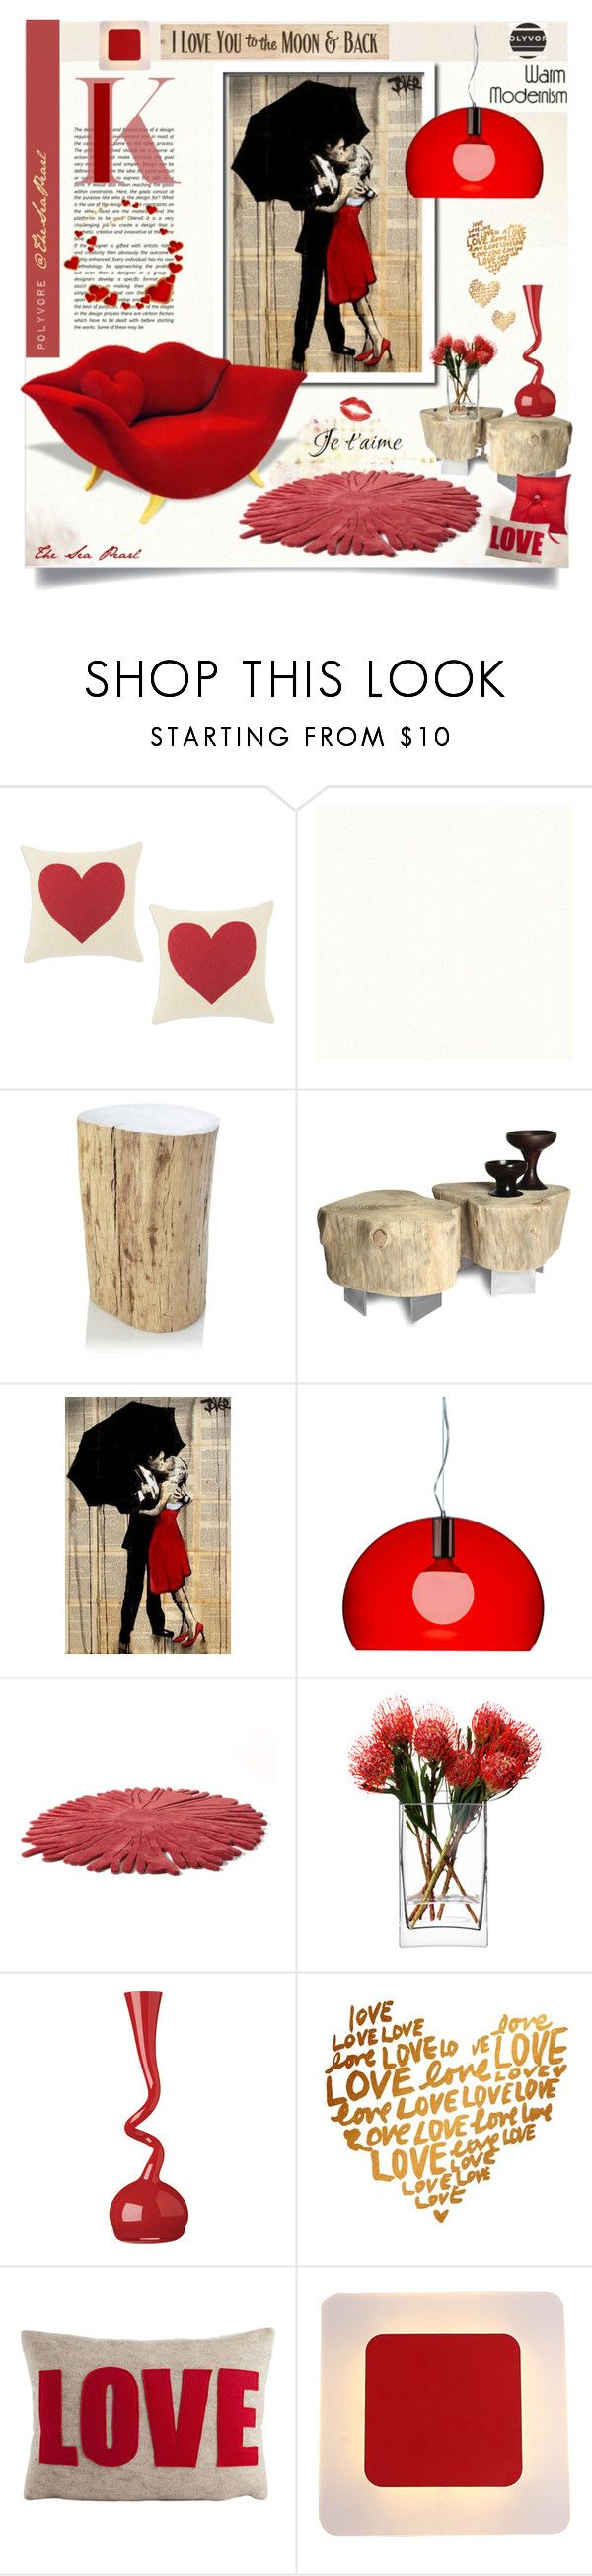 """""""Love Story♡"""" by theseapearl ❤ liked on Polyvore featuring interior, interiors, interior design, home, home decor, interior decorating, French Connection, Kartell, Nodus and LSA International"""